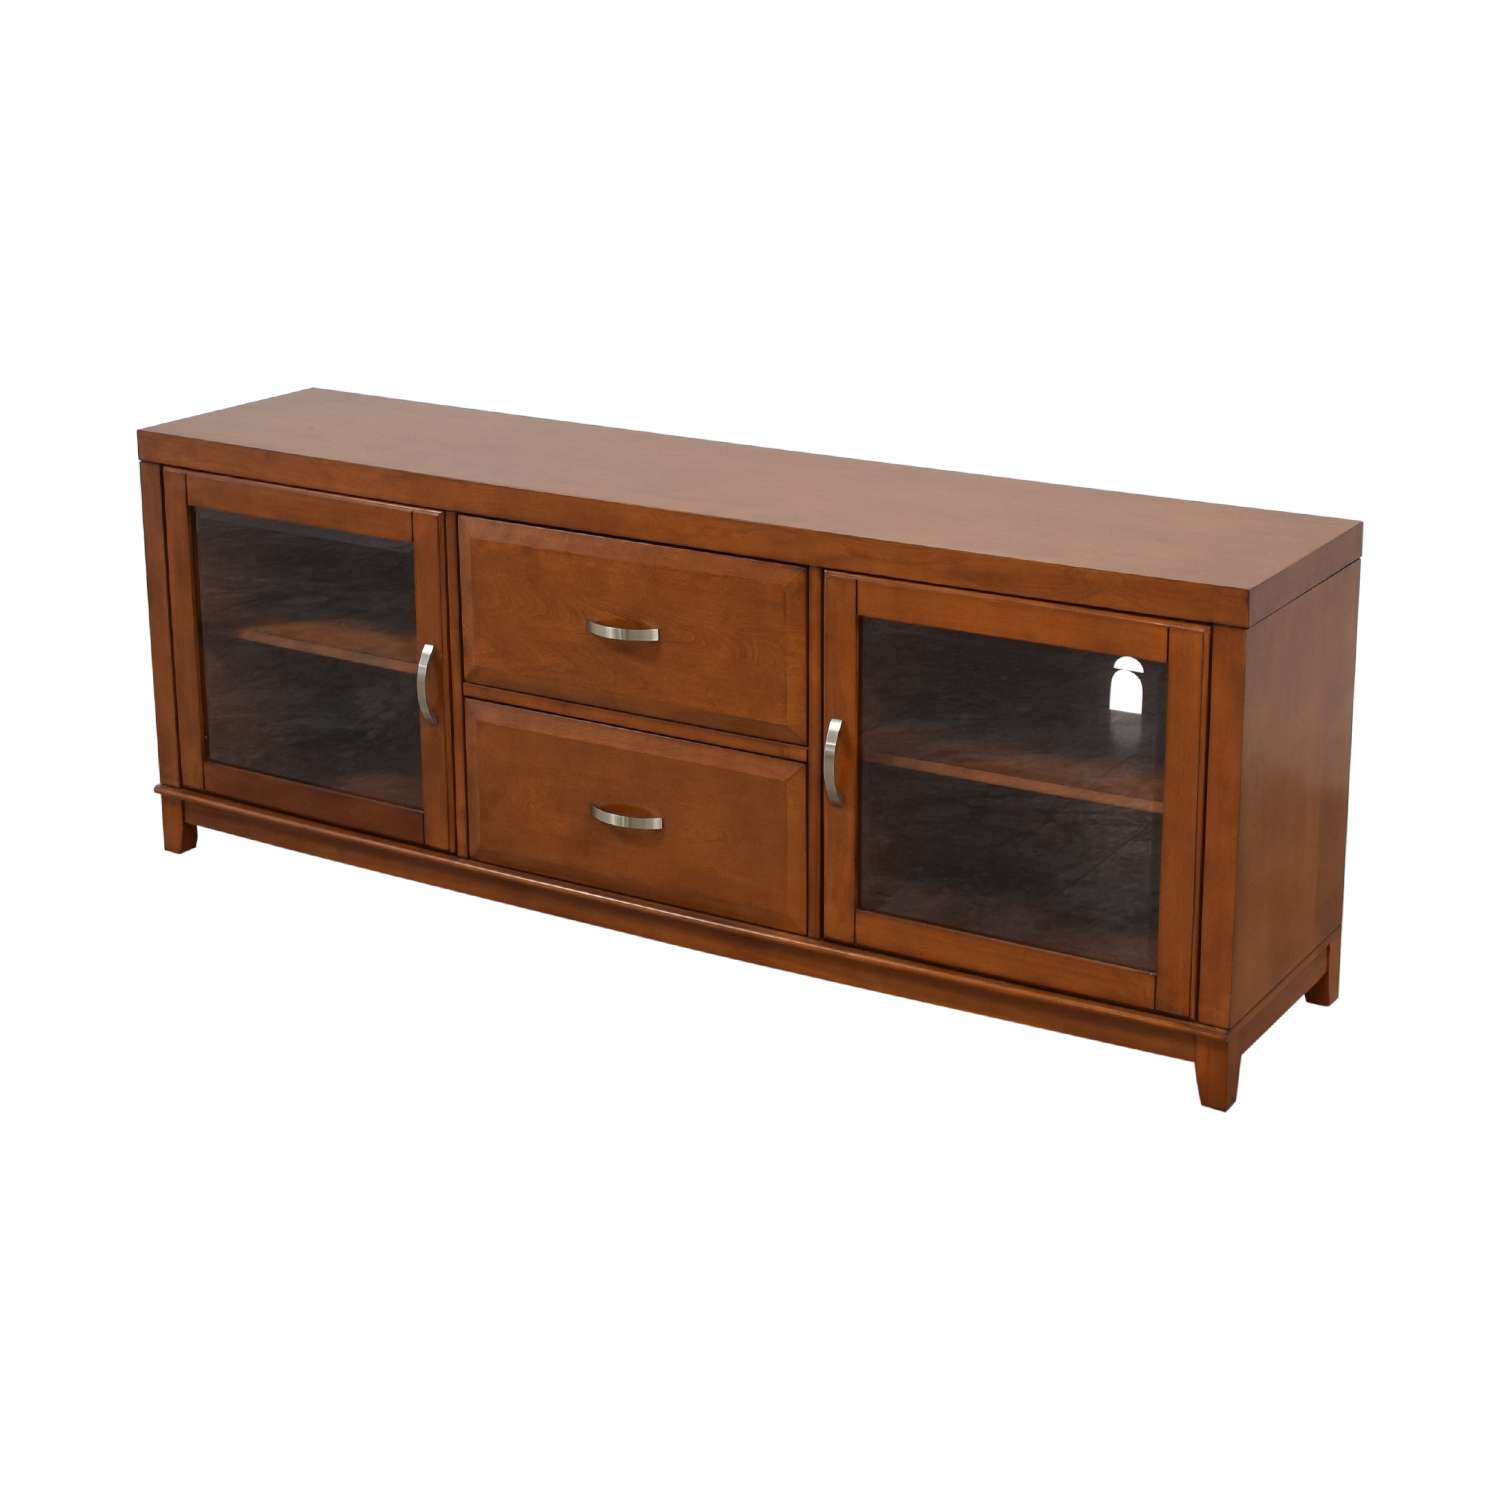 Raymour & Flanigan Raymour & Flanigan Wood and Glass Media Console coupon